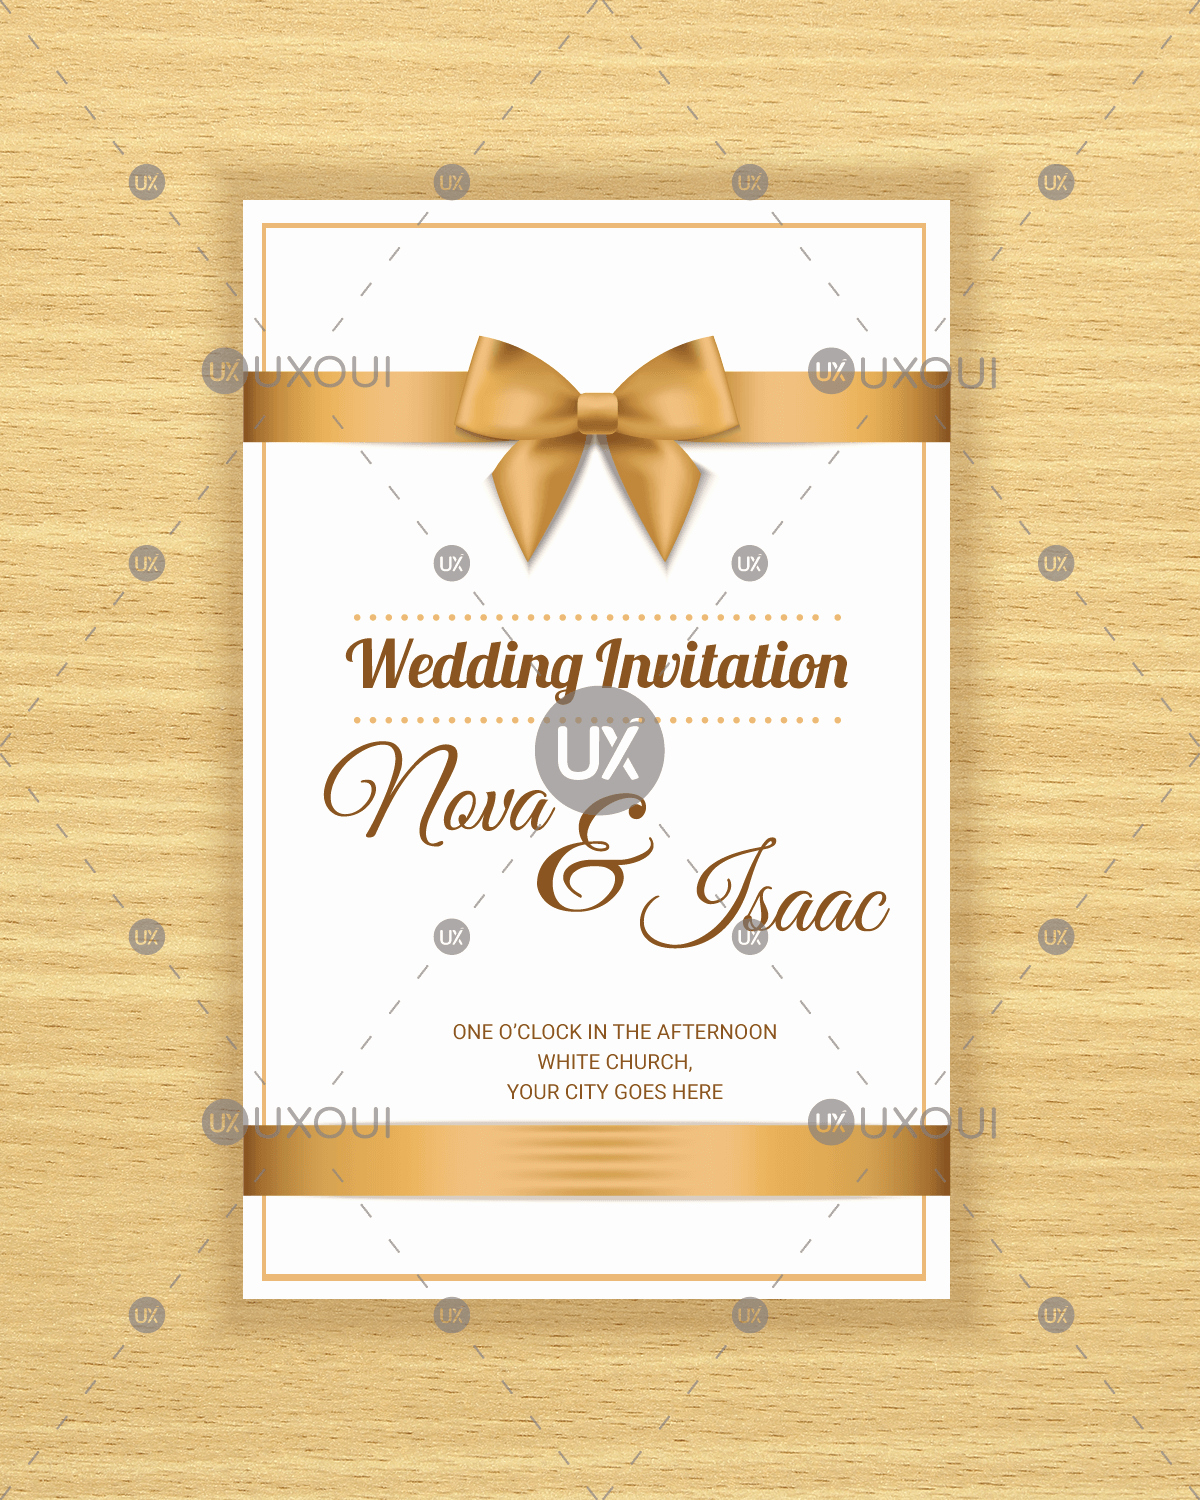 Wedding Invitation Design Templates New Free Retro Wedding Invitation Card Template Design Vector